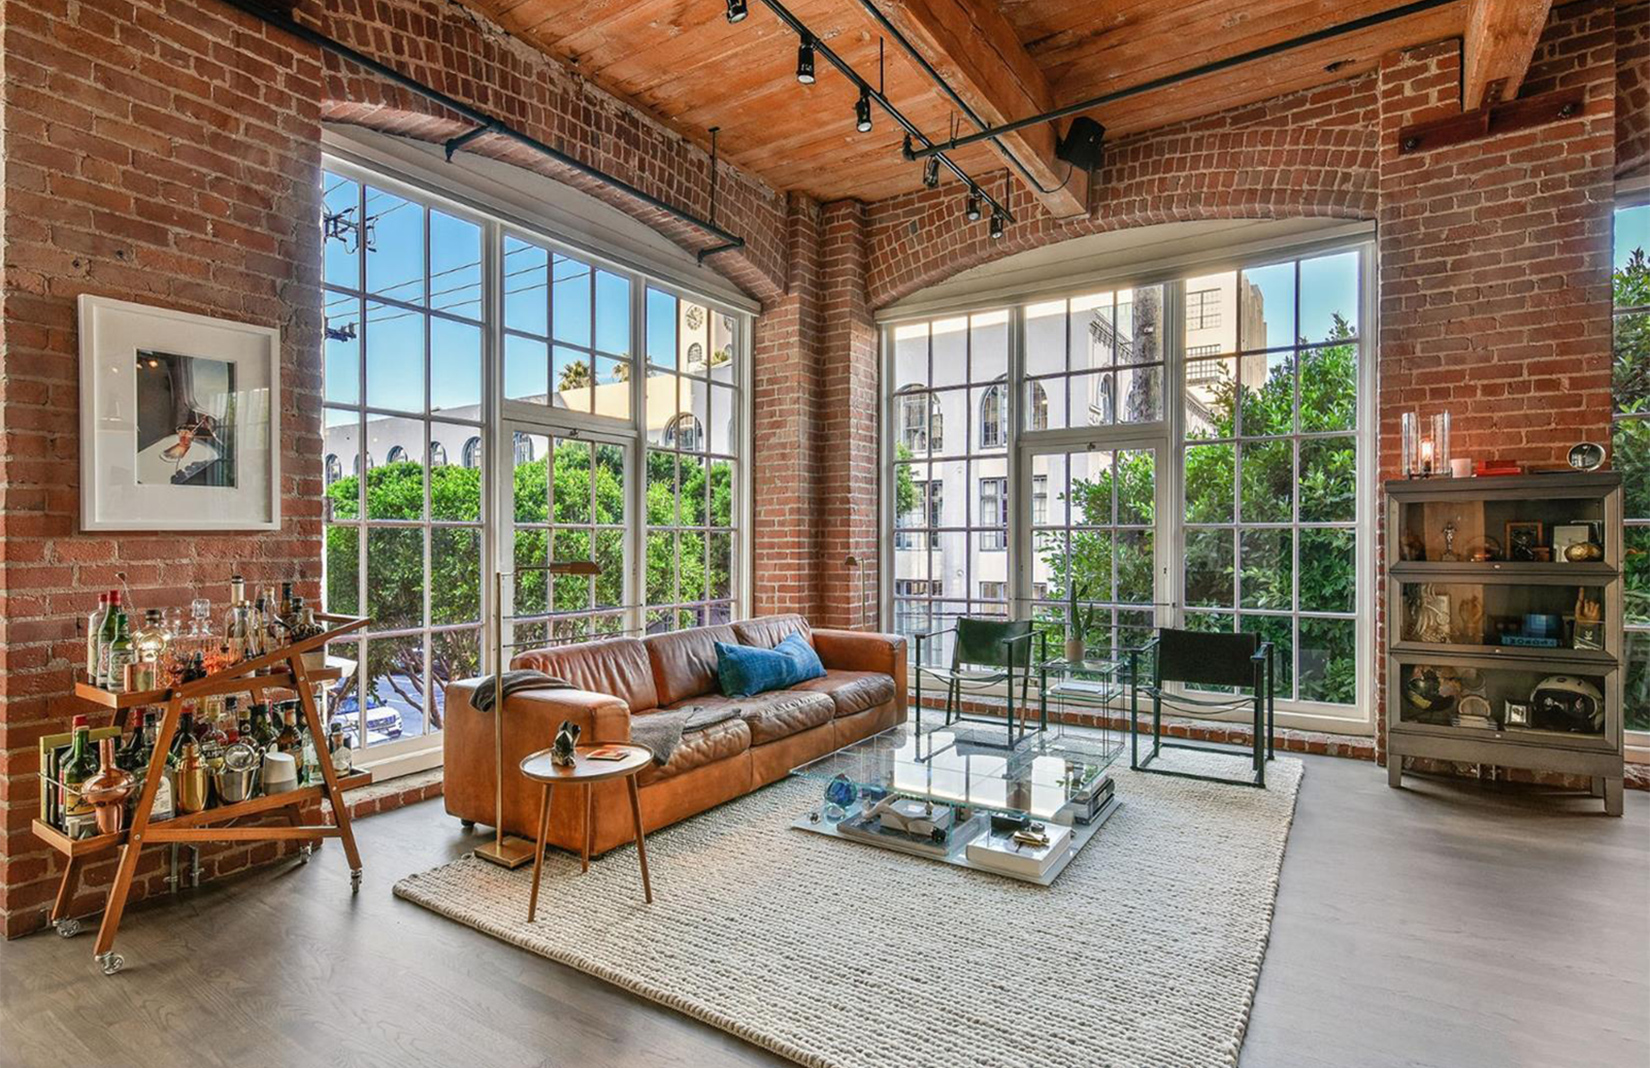 355 Bryant Street loft for sale in San Francisco